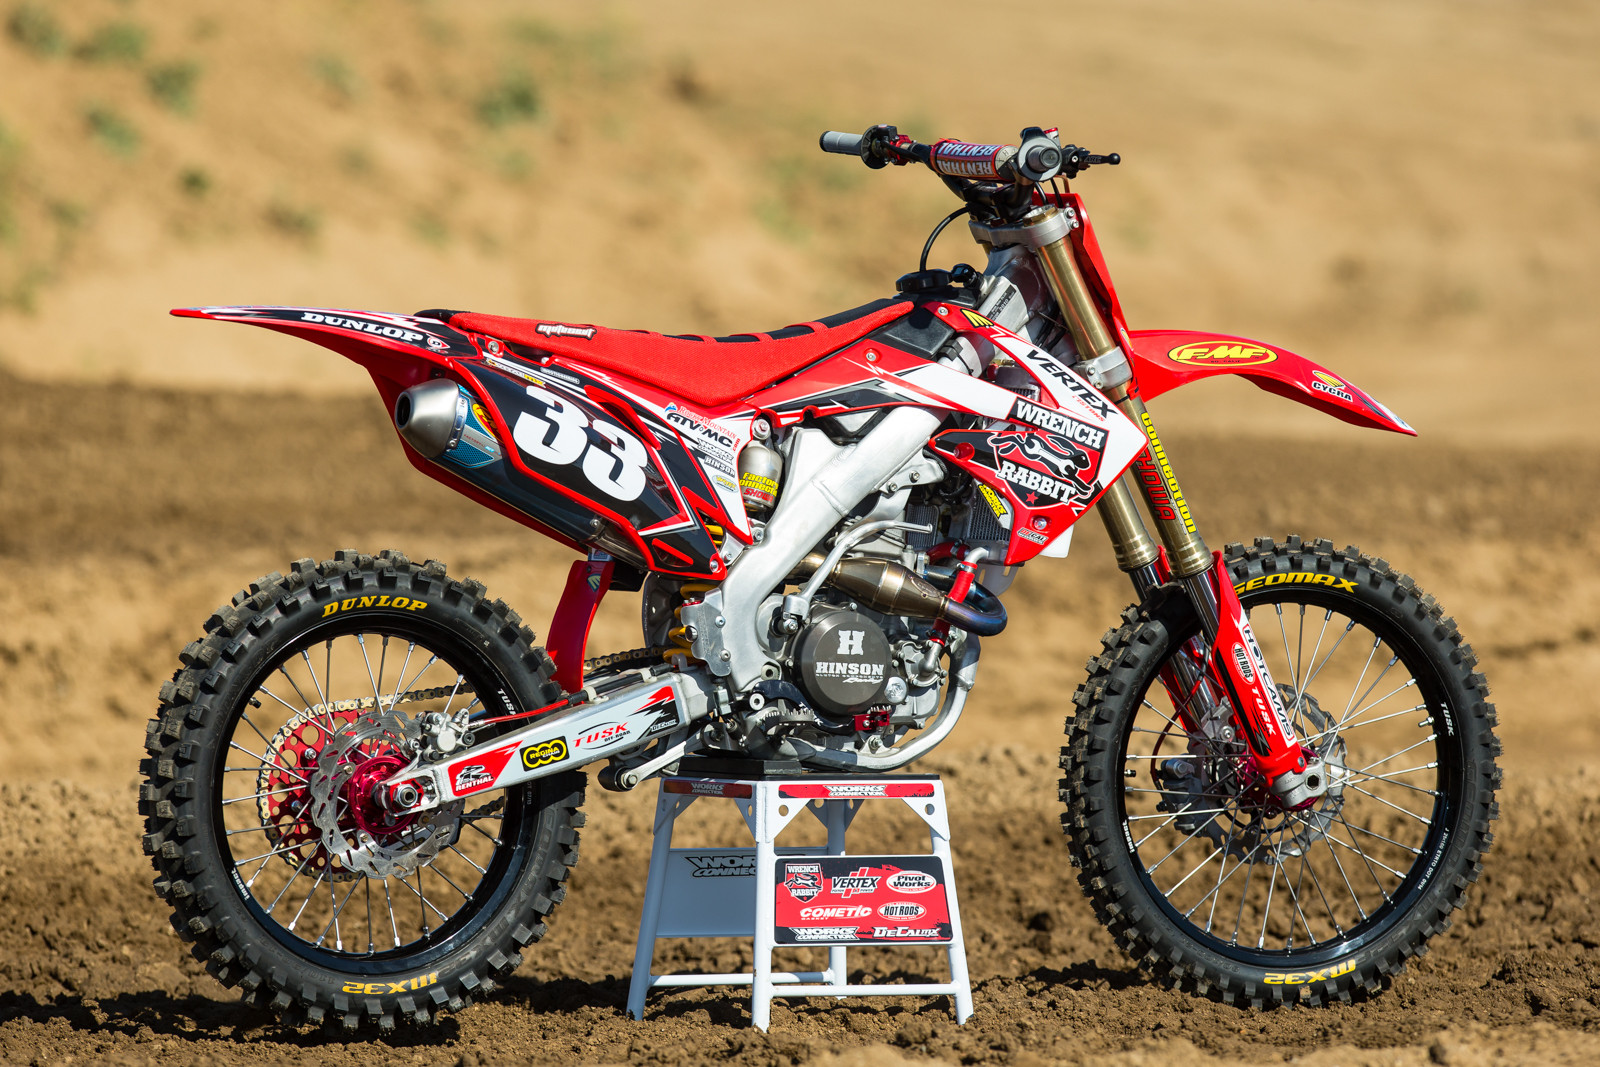 2016 honda crf450r motorcycle usa 2017 2018 2019 honda. Black Bedroom Furniture Sets. Home Design Ideas